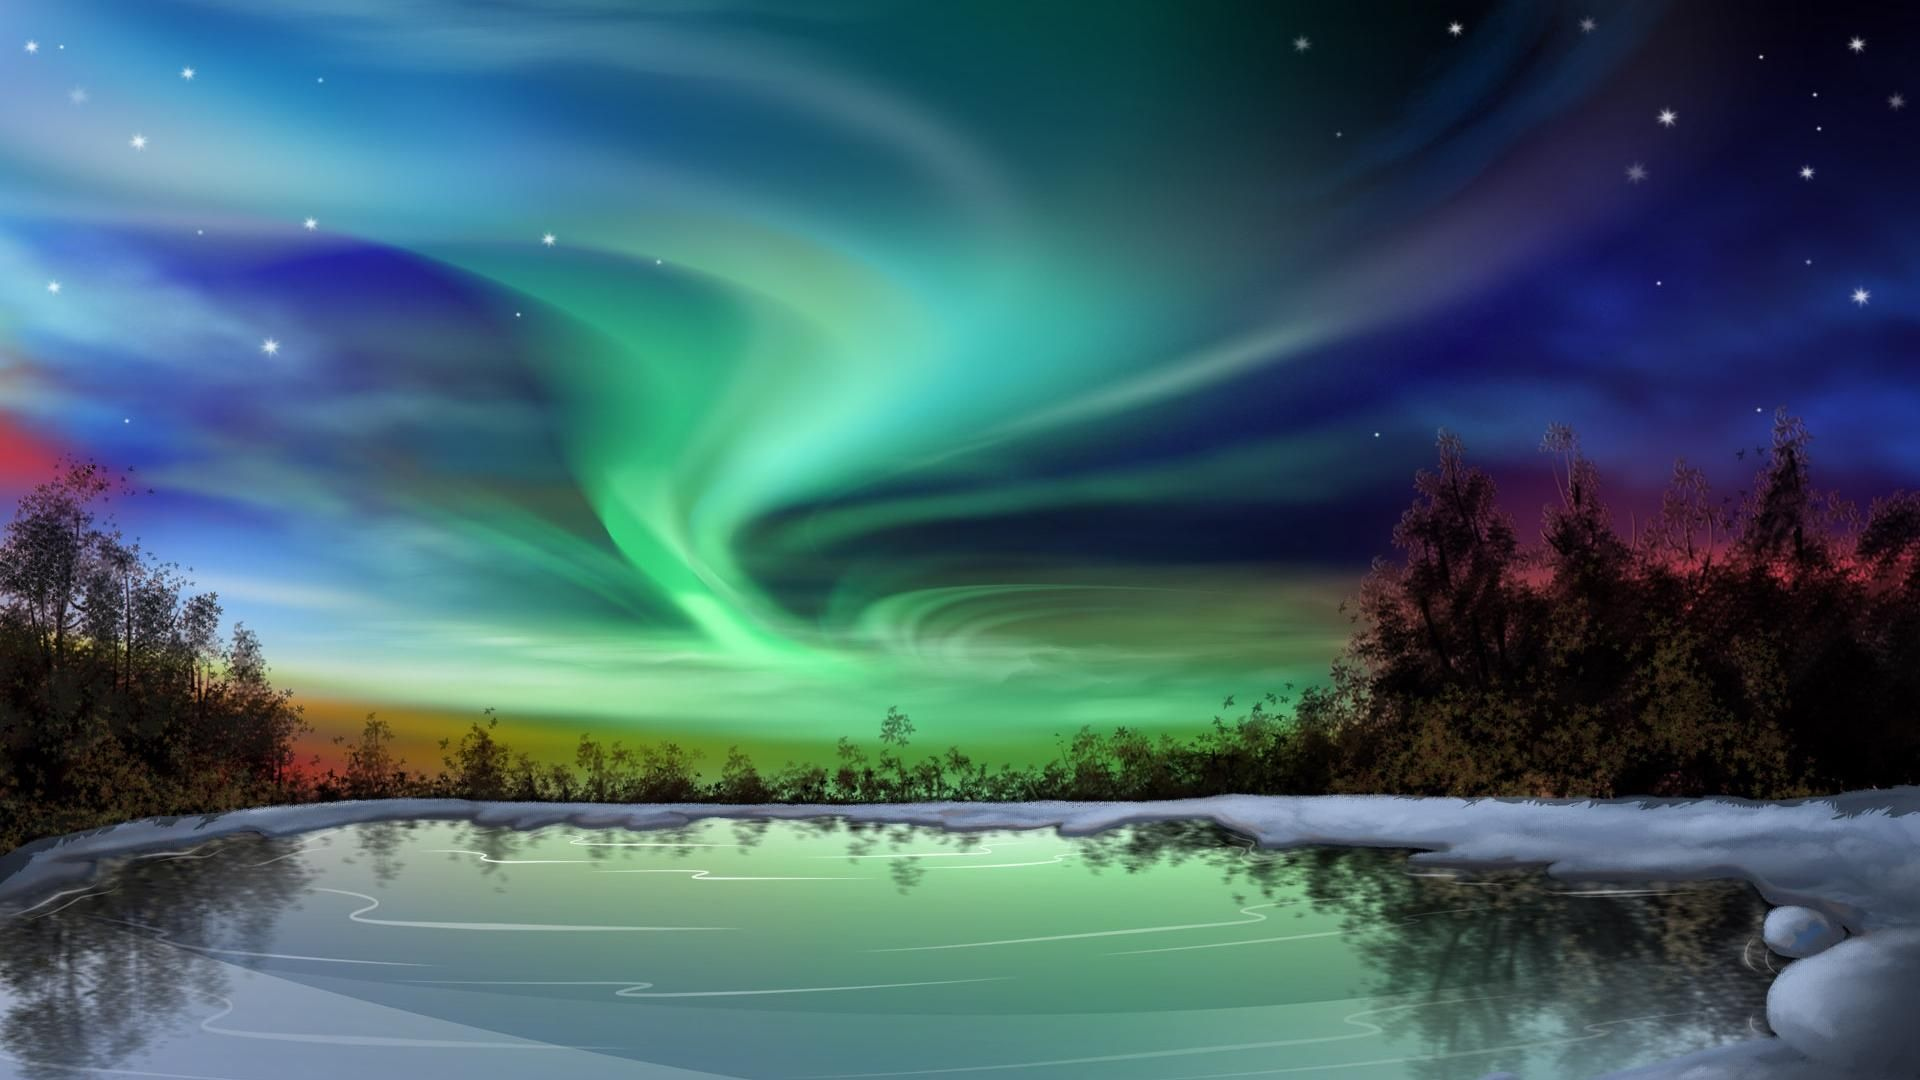 Aurora Borealis Wallpapers Sky Hd Wallpaper Northern Lights